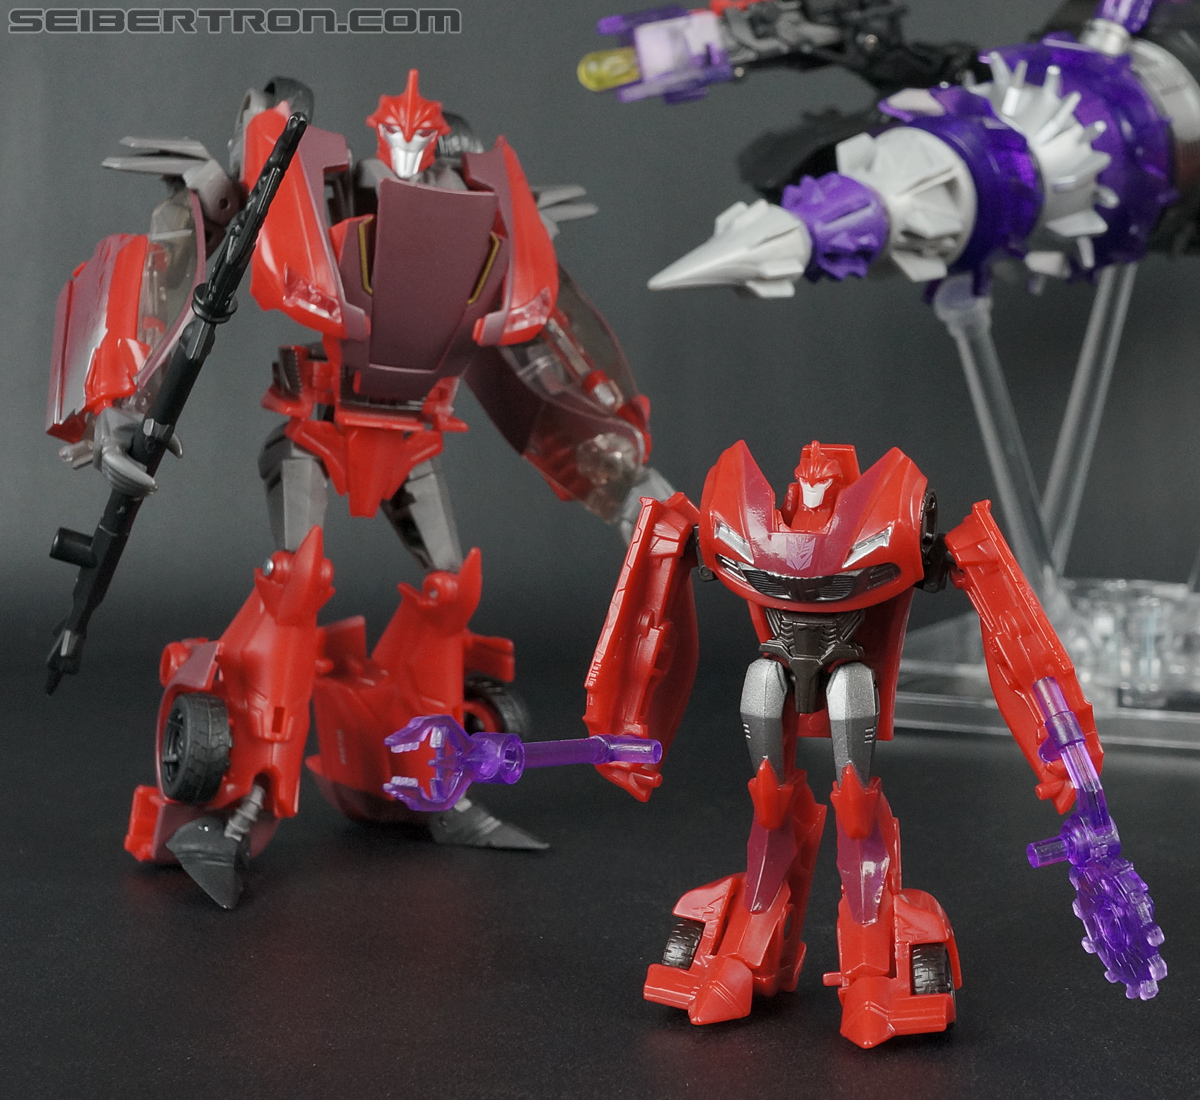 Transformers Prime: Cyberverse Knock Out (Image #145 of 146)